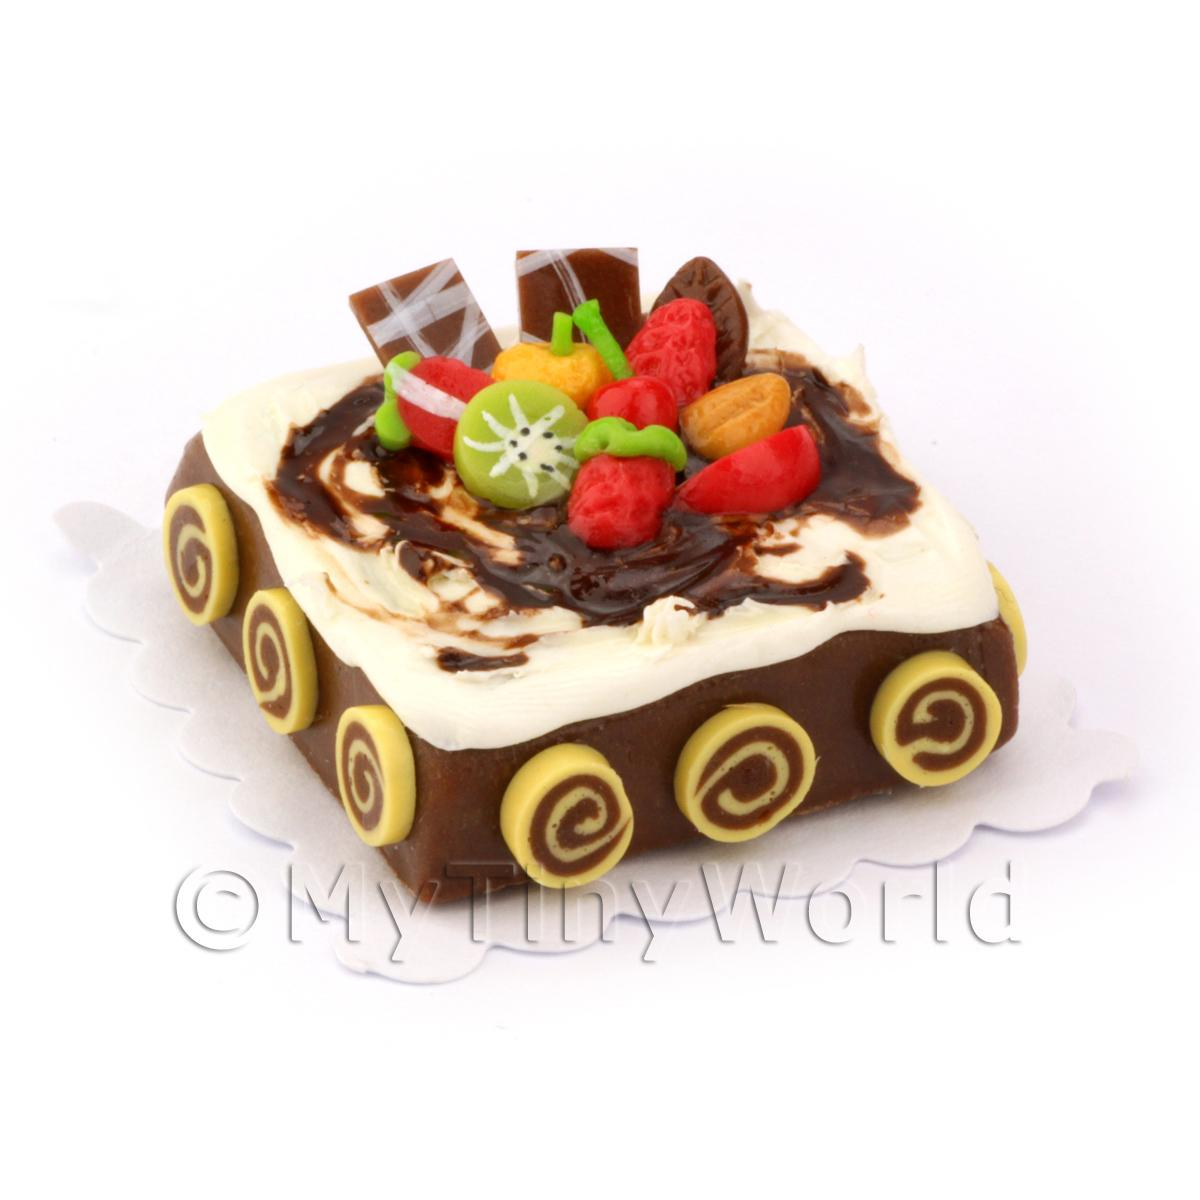 Dolls House Miniature Square Fruit Topped Chocolate Cake